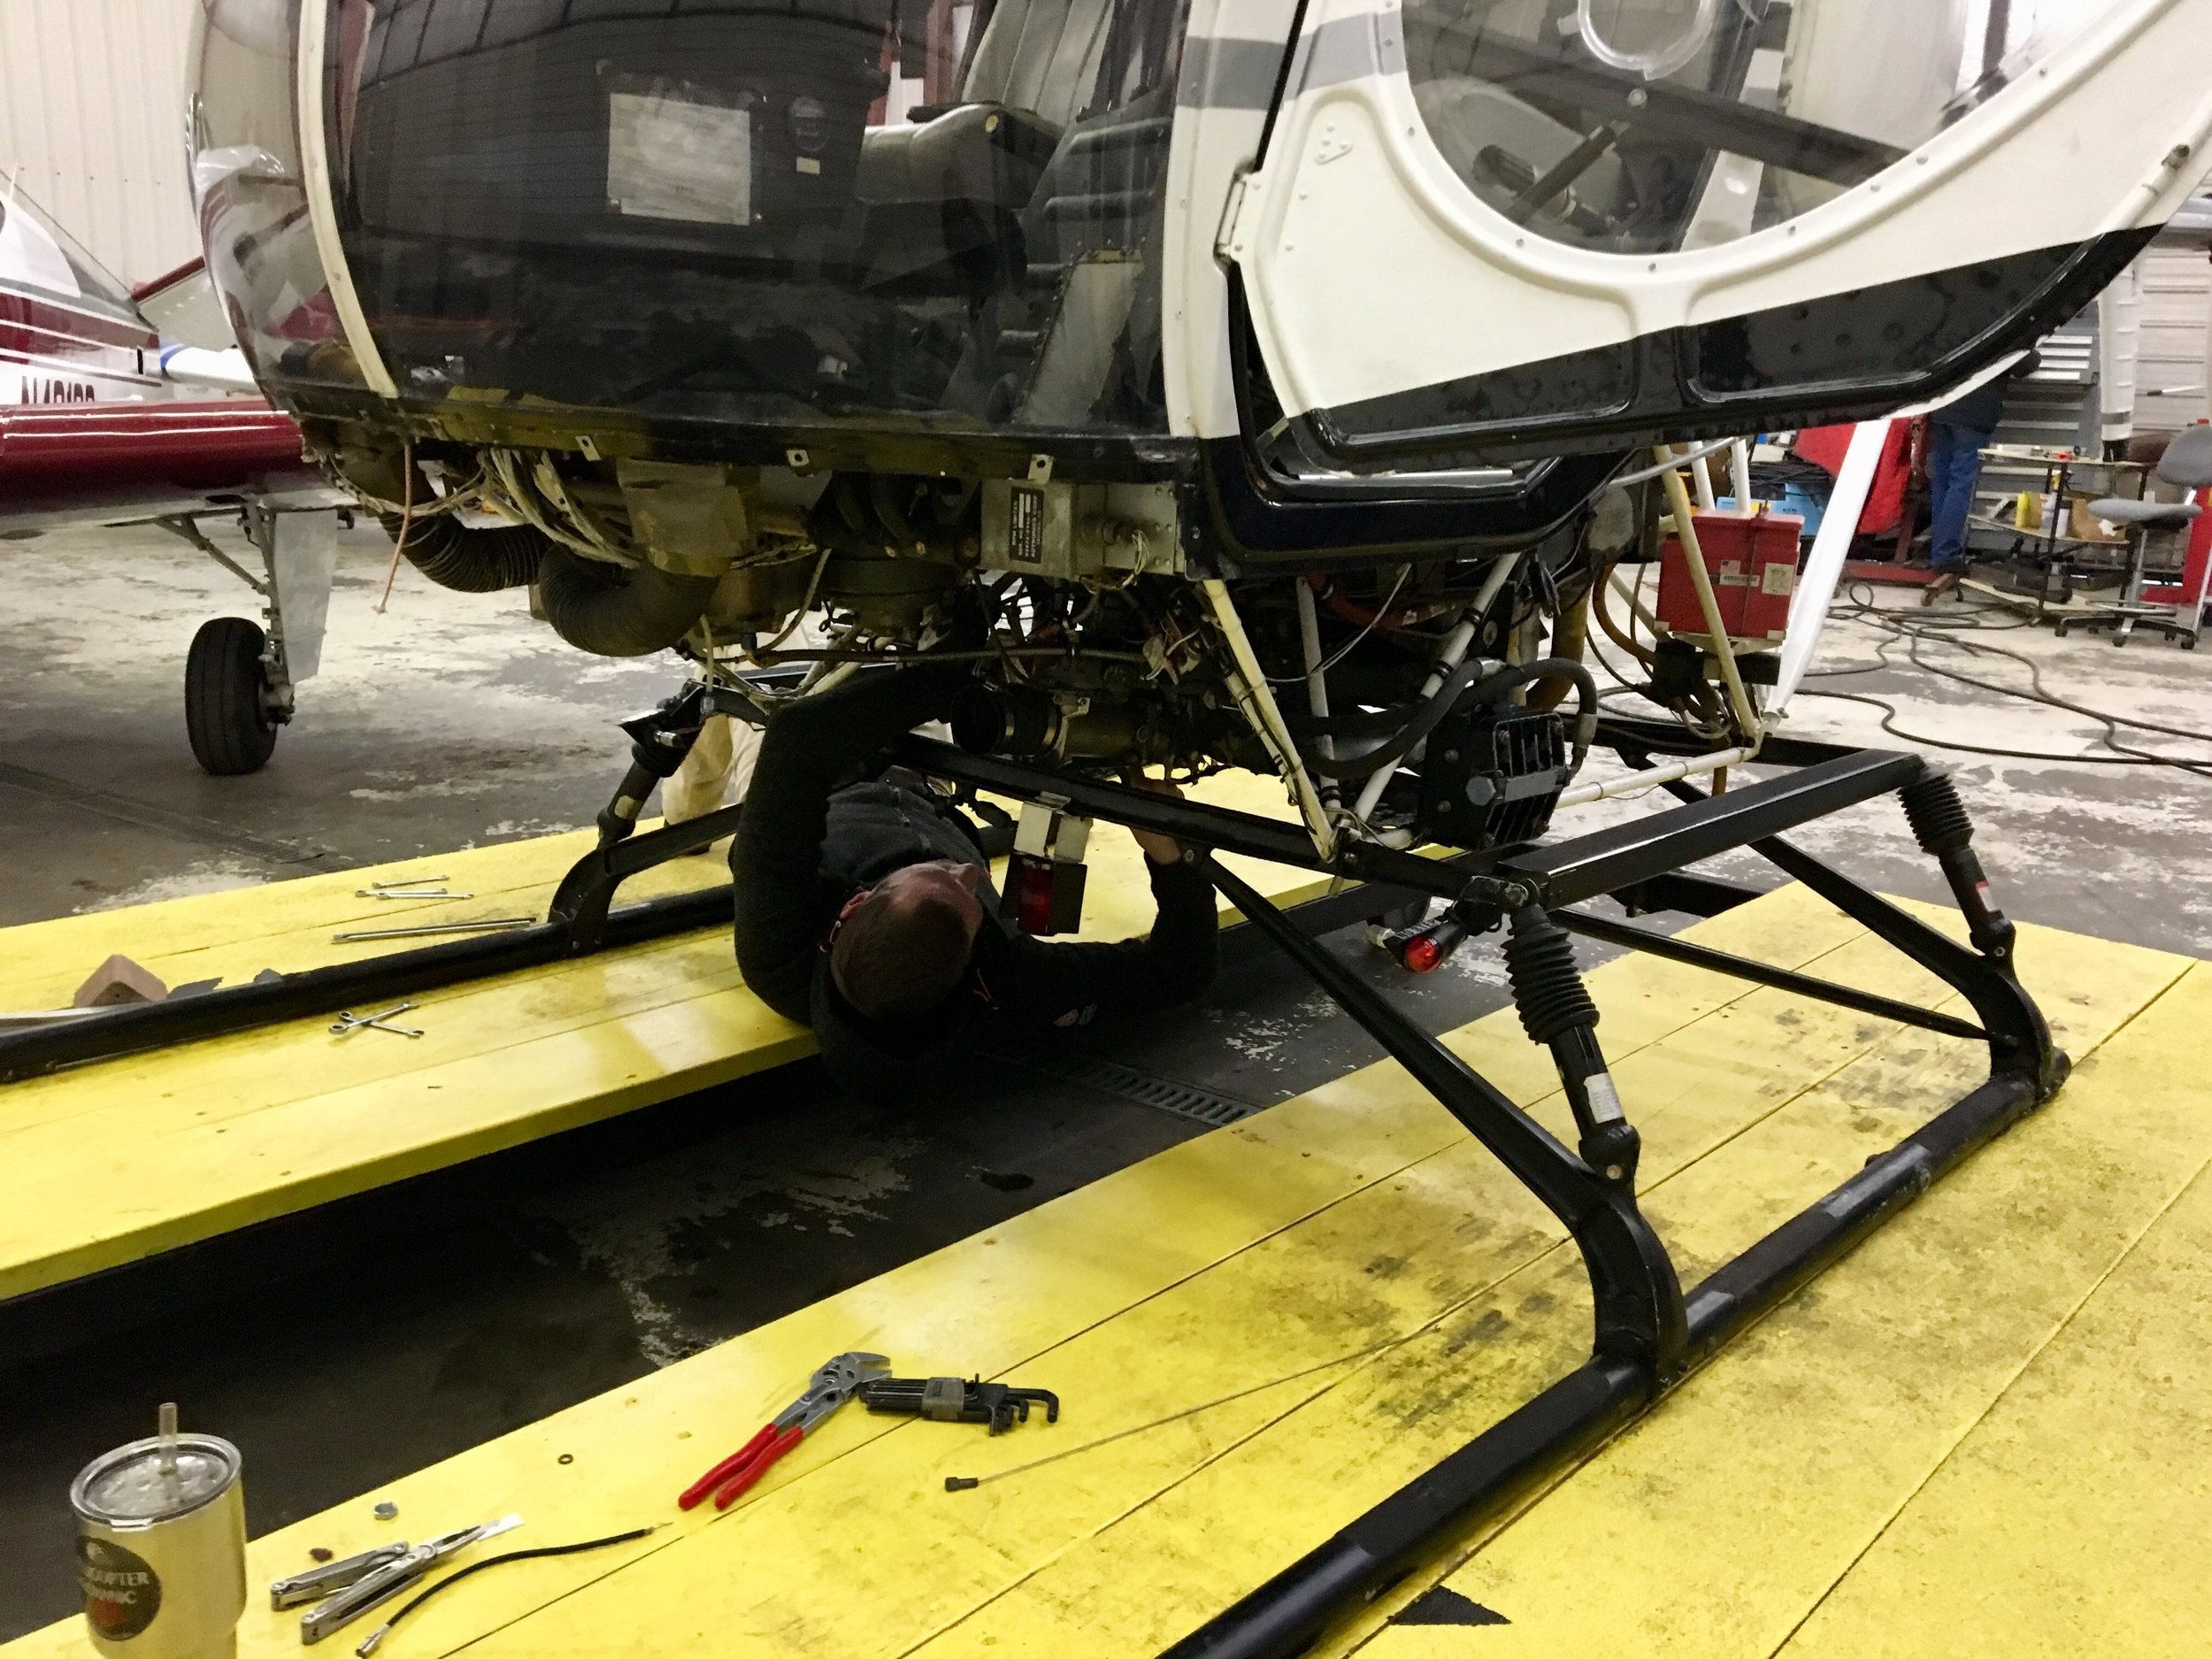 We Do Everything - Our Mechanics Are FAA Certificated To Perform Any Type Of Maintenance On General Aviation Aircraft. From A Major Overhaul To An ELT Battery Change, Let Our Mechanics Work To Keep Your Plane Safe And In The Air!